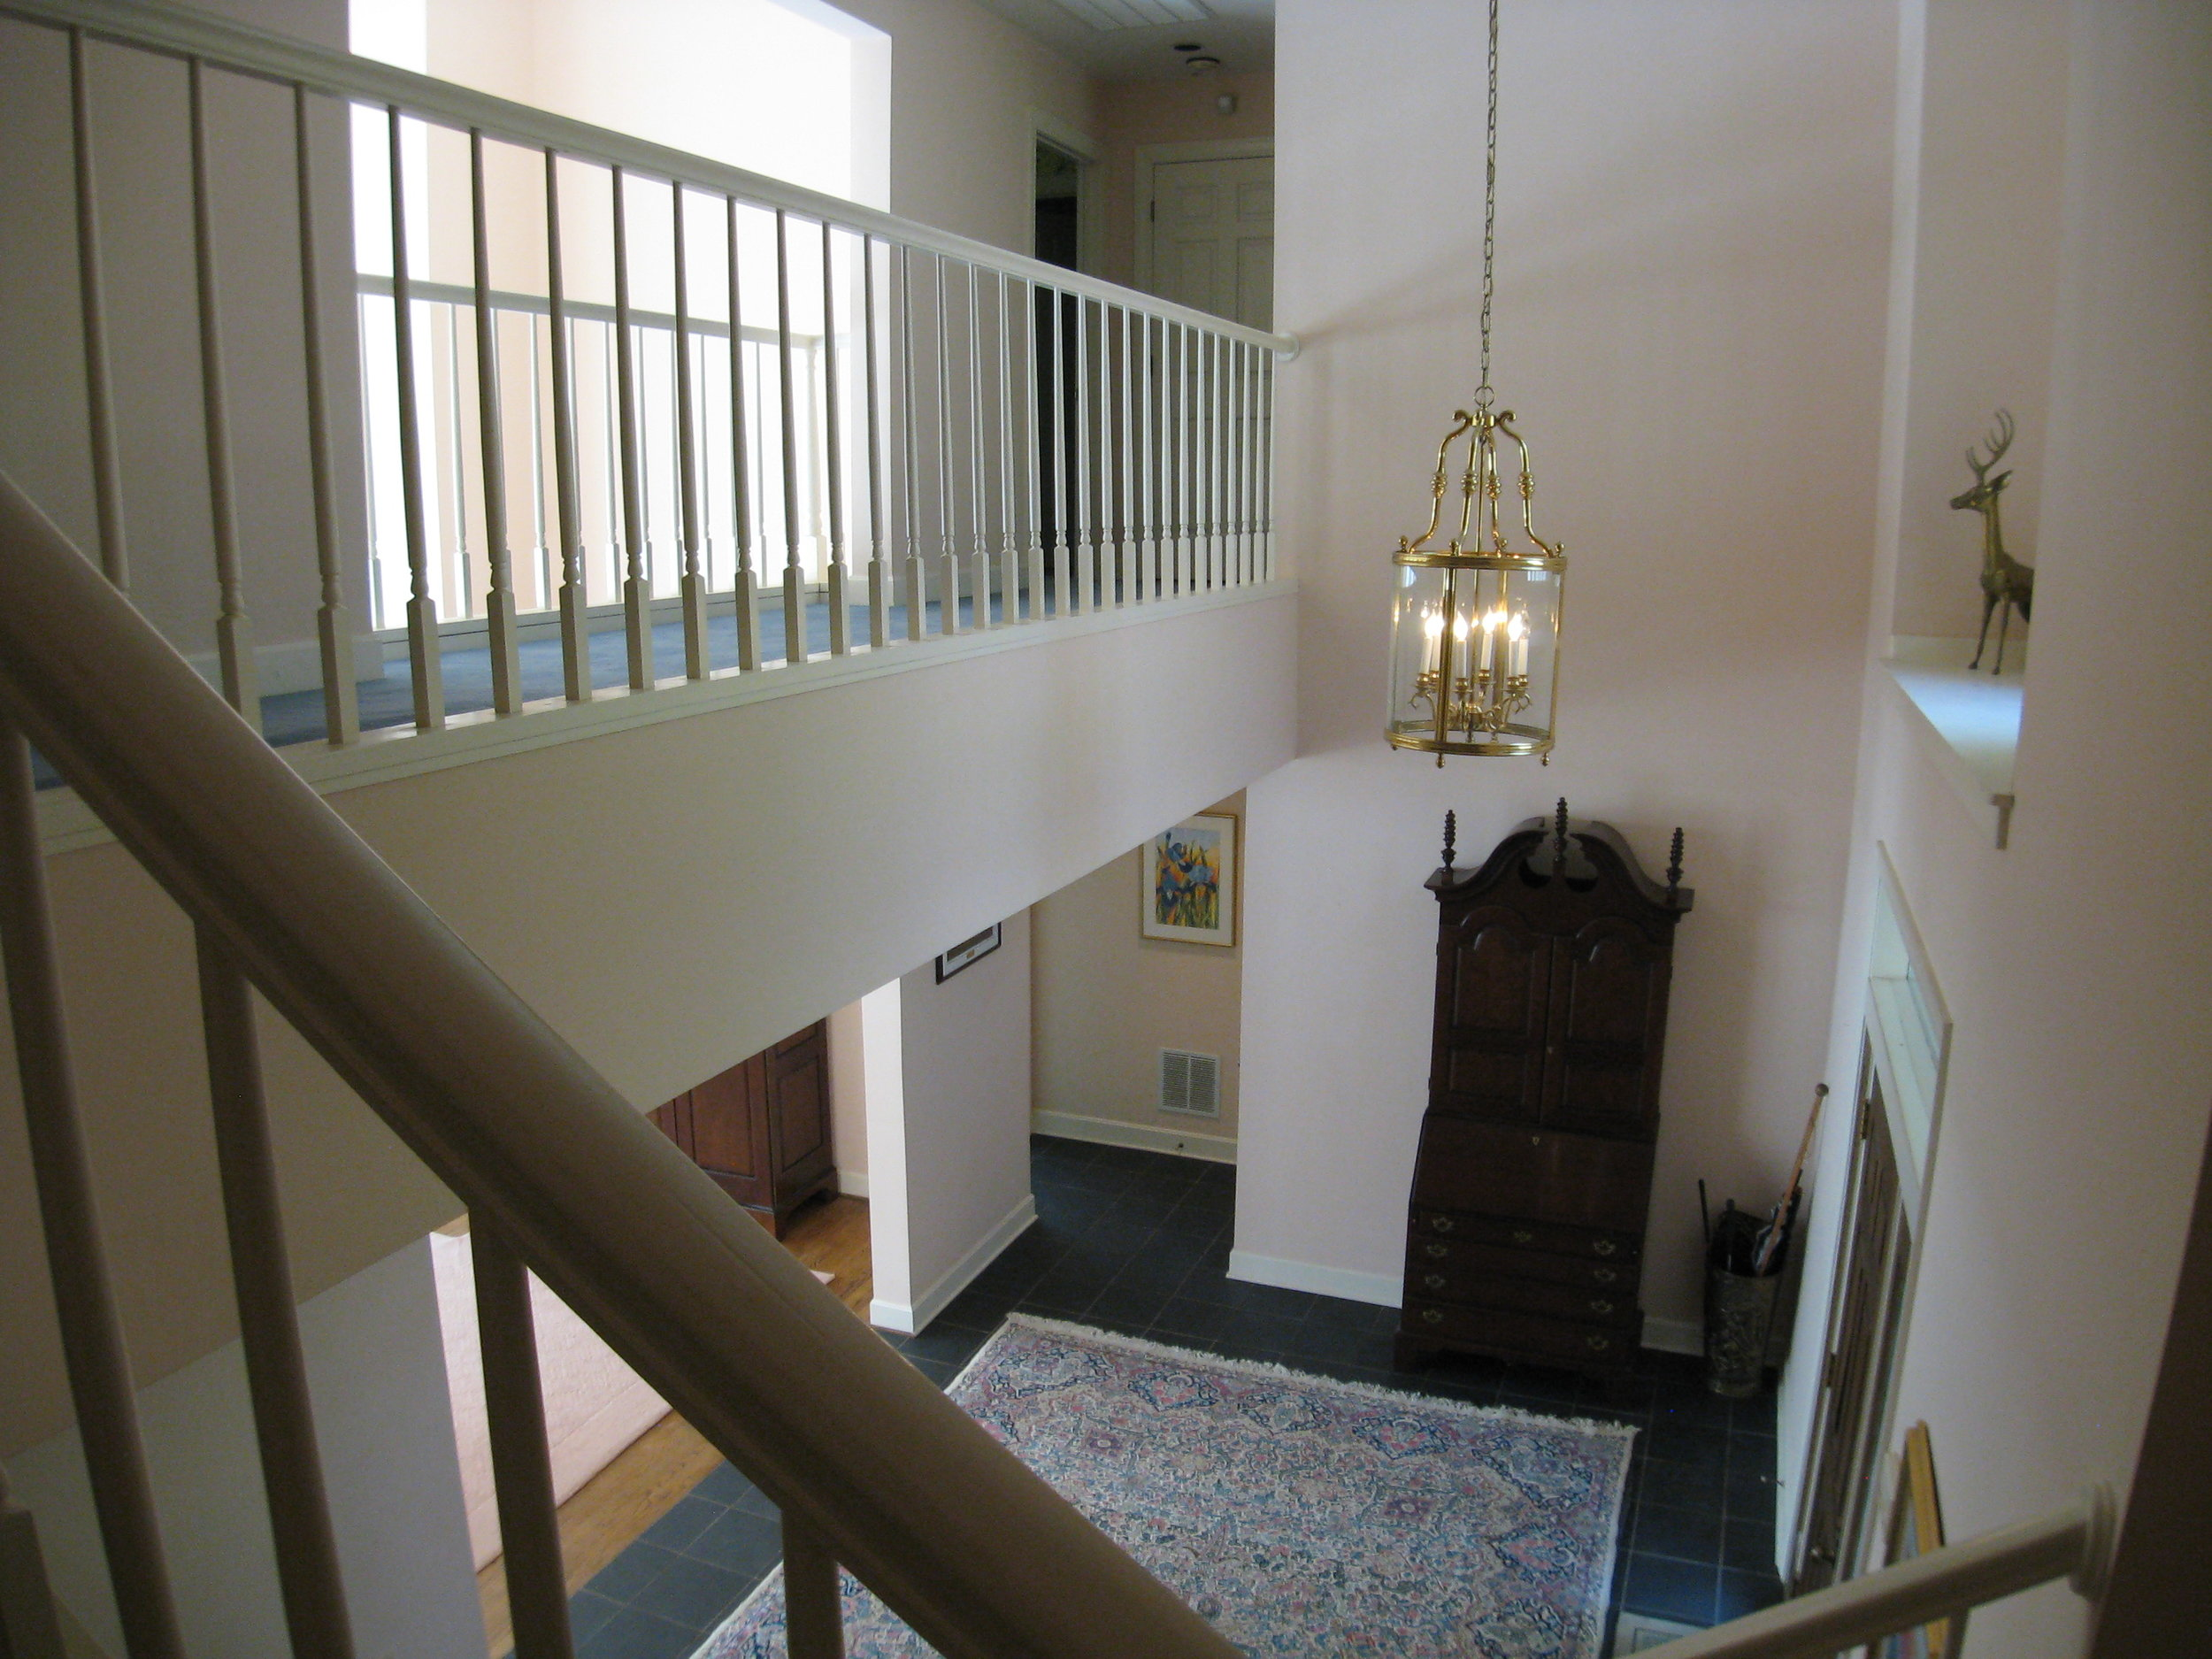 Stairwell to Second Floor